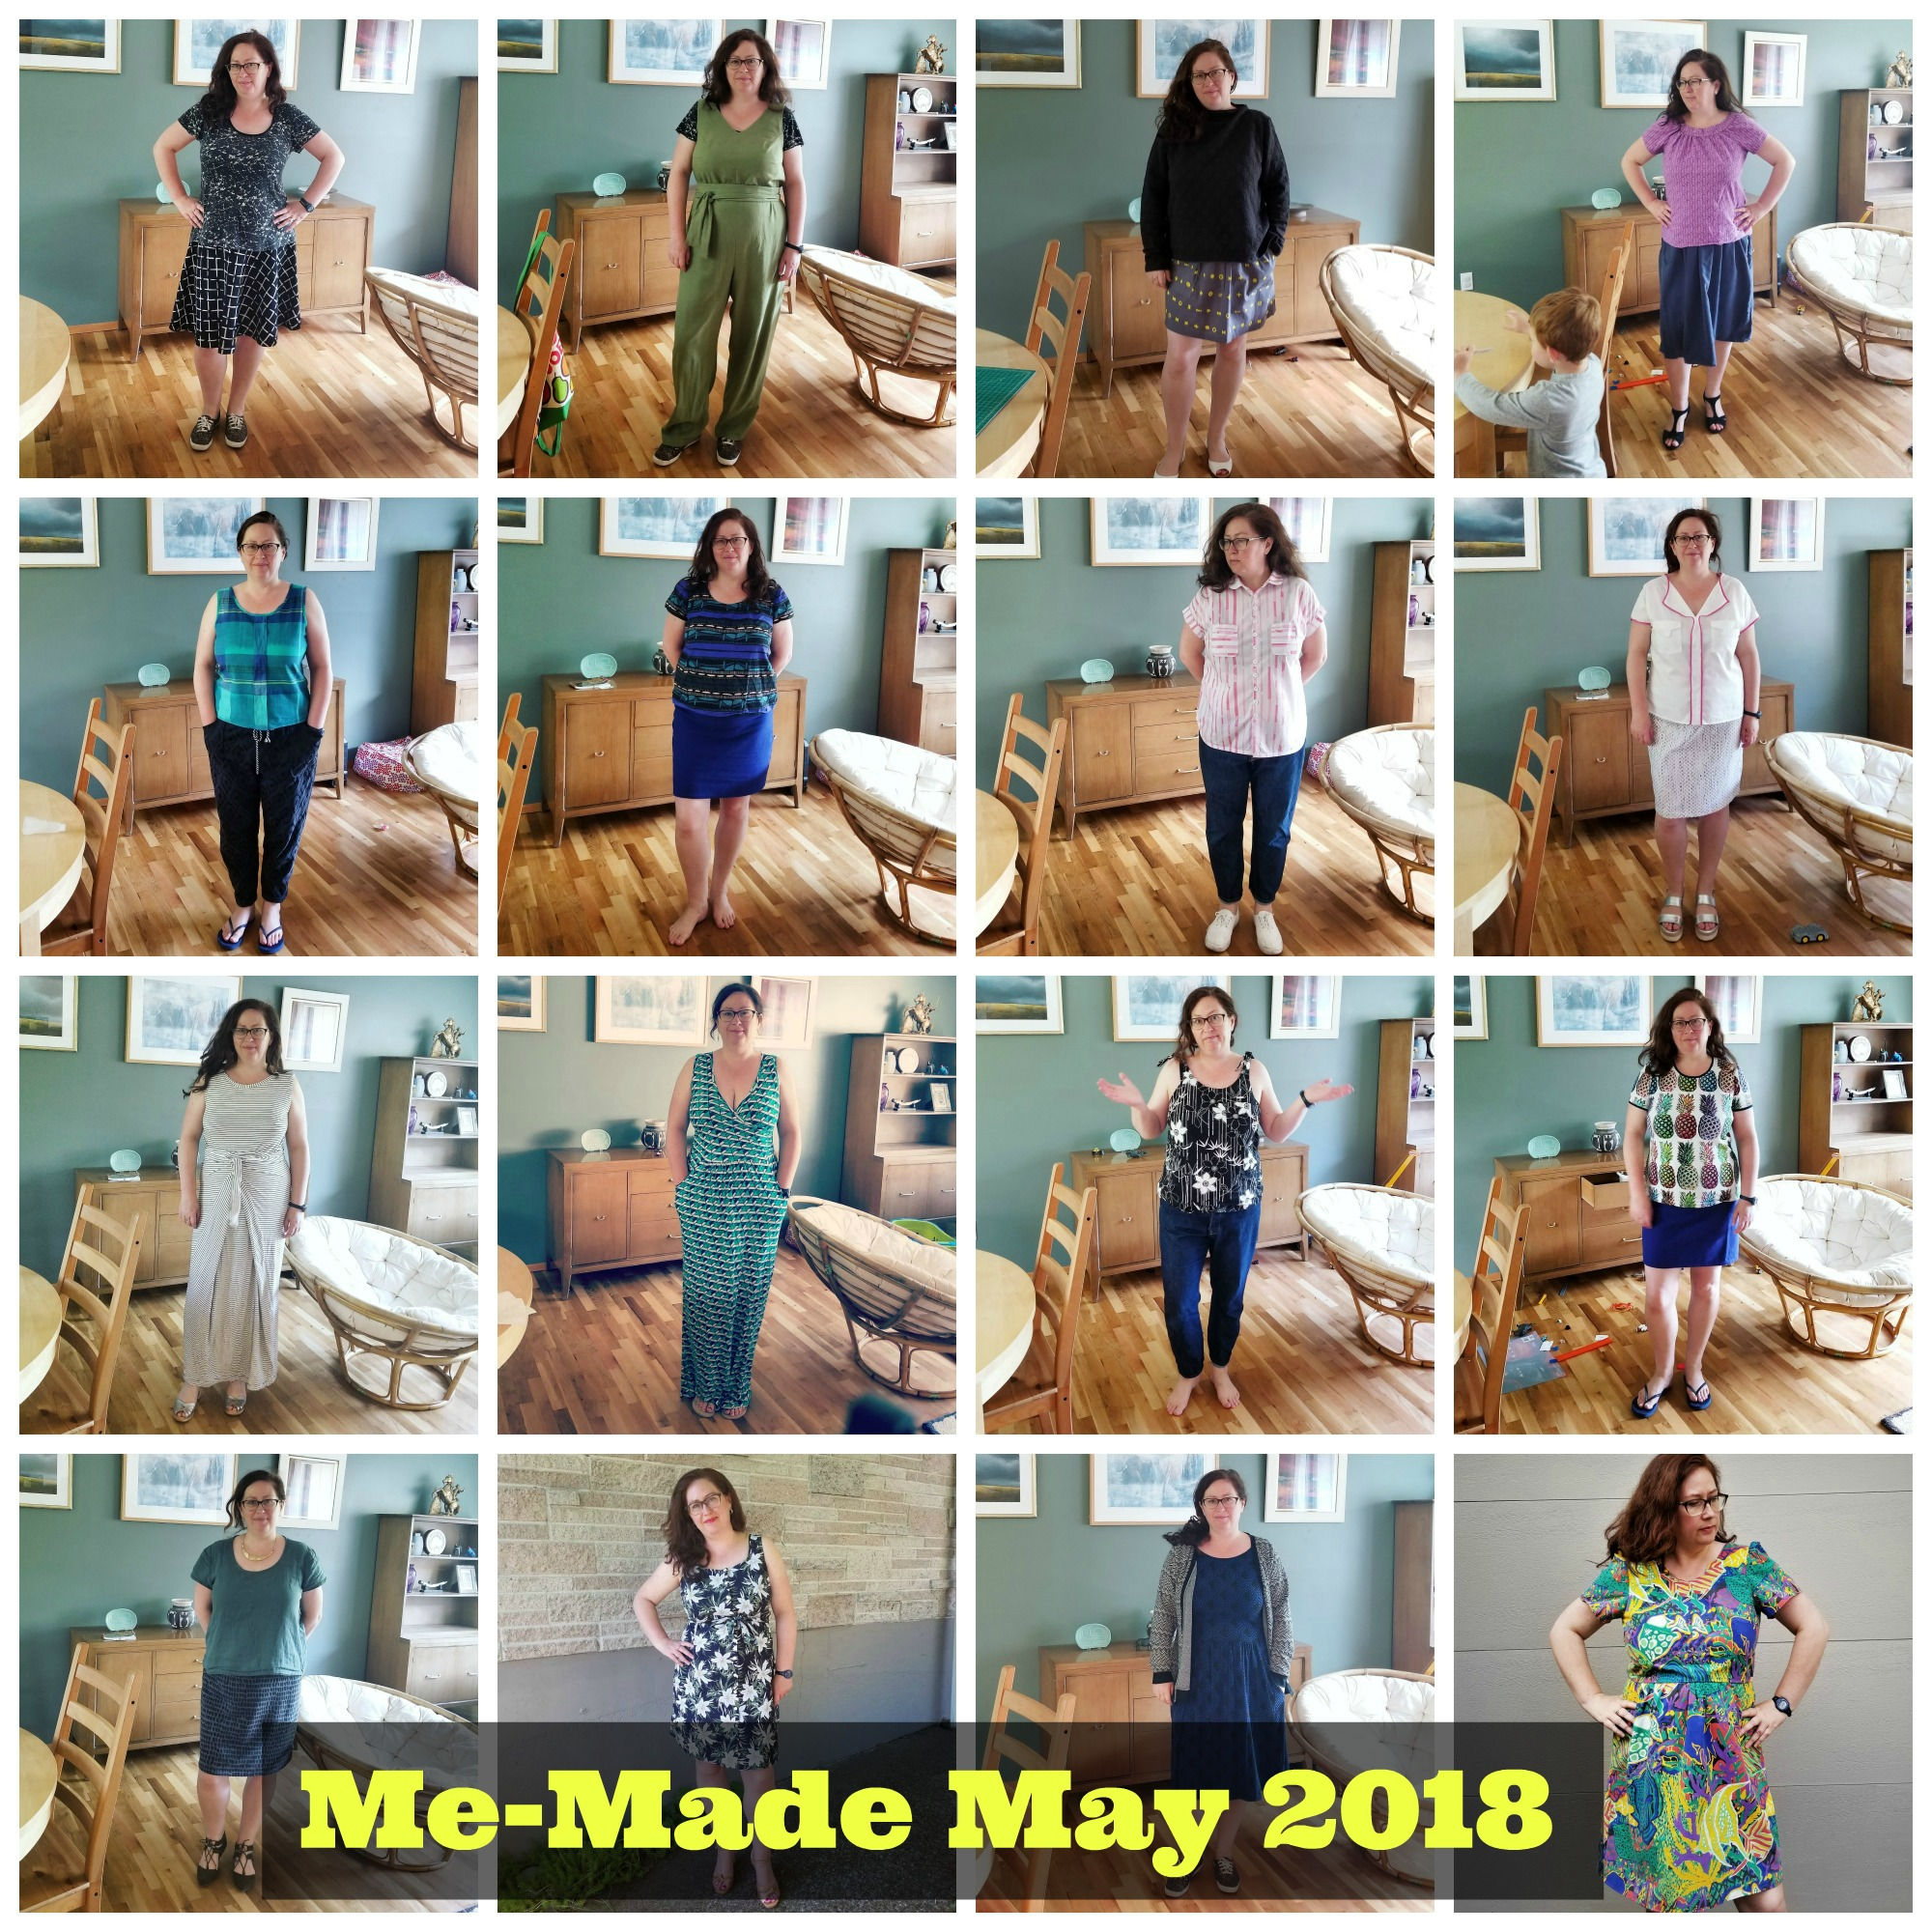 MMMay collage